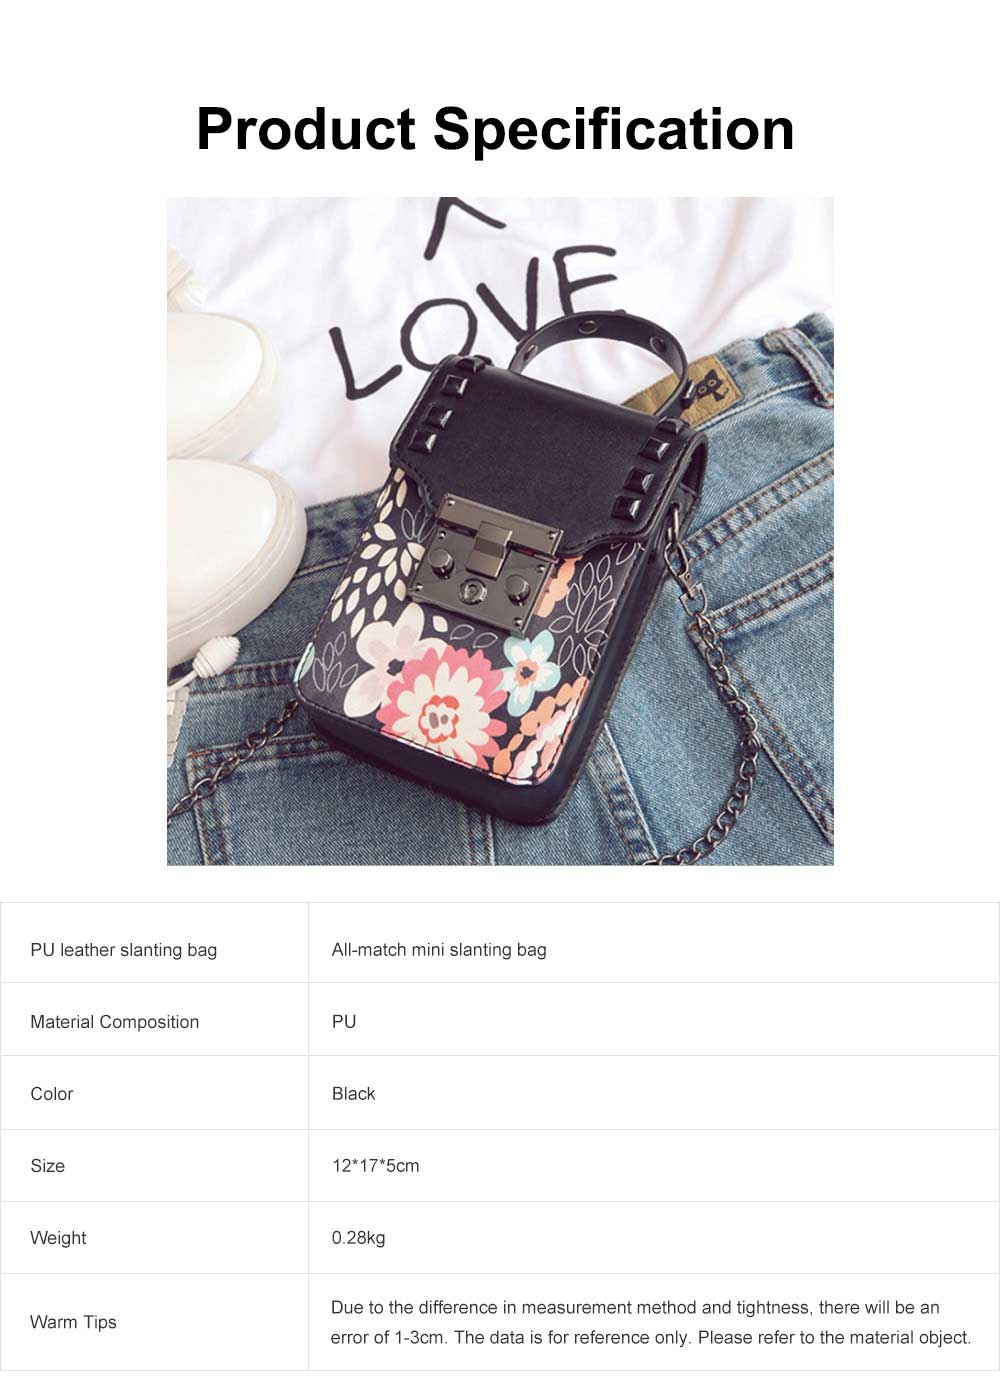 Personality Rivet Mobile Phone Shoulder Bag, All-match Mini Slanting Bag for Dating, Shopping, Daily Fahsion Mini Bag 6